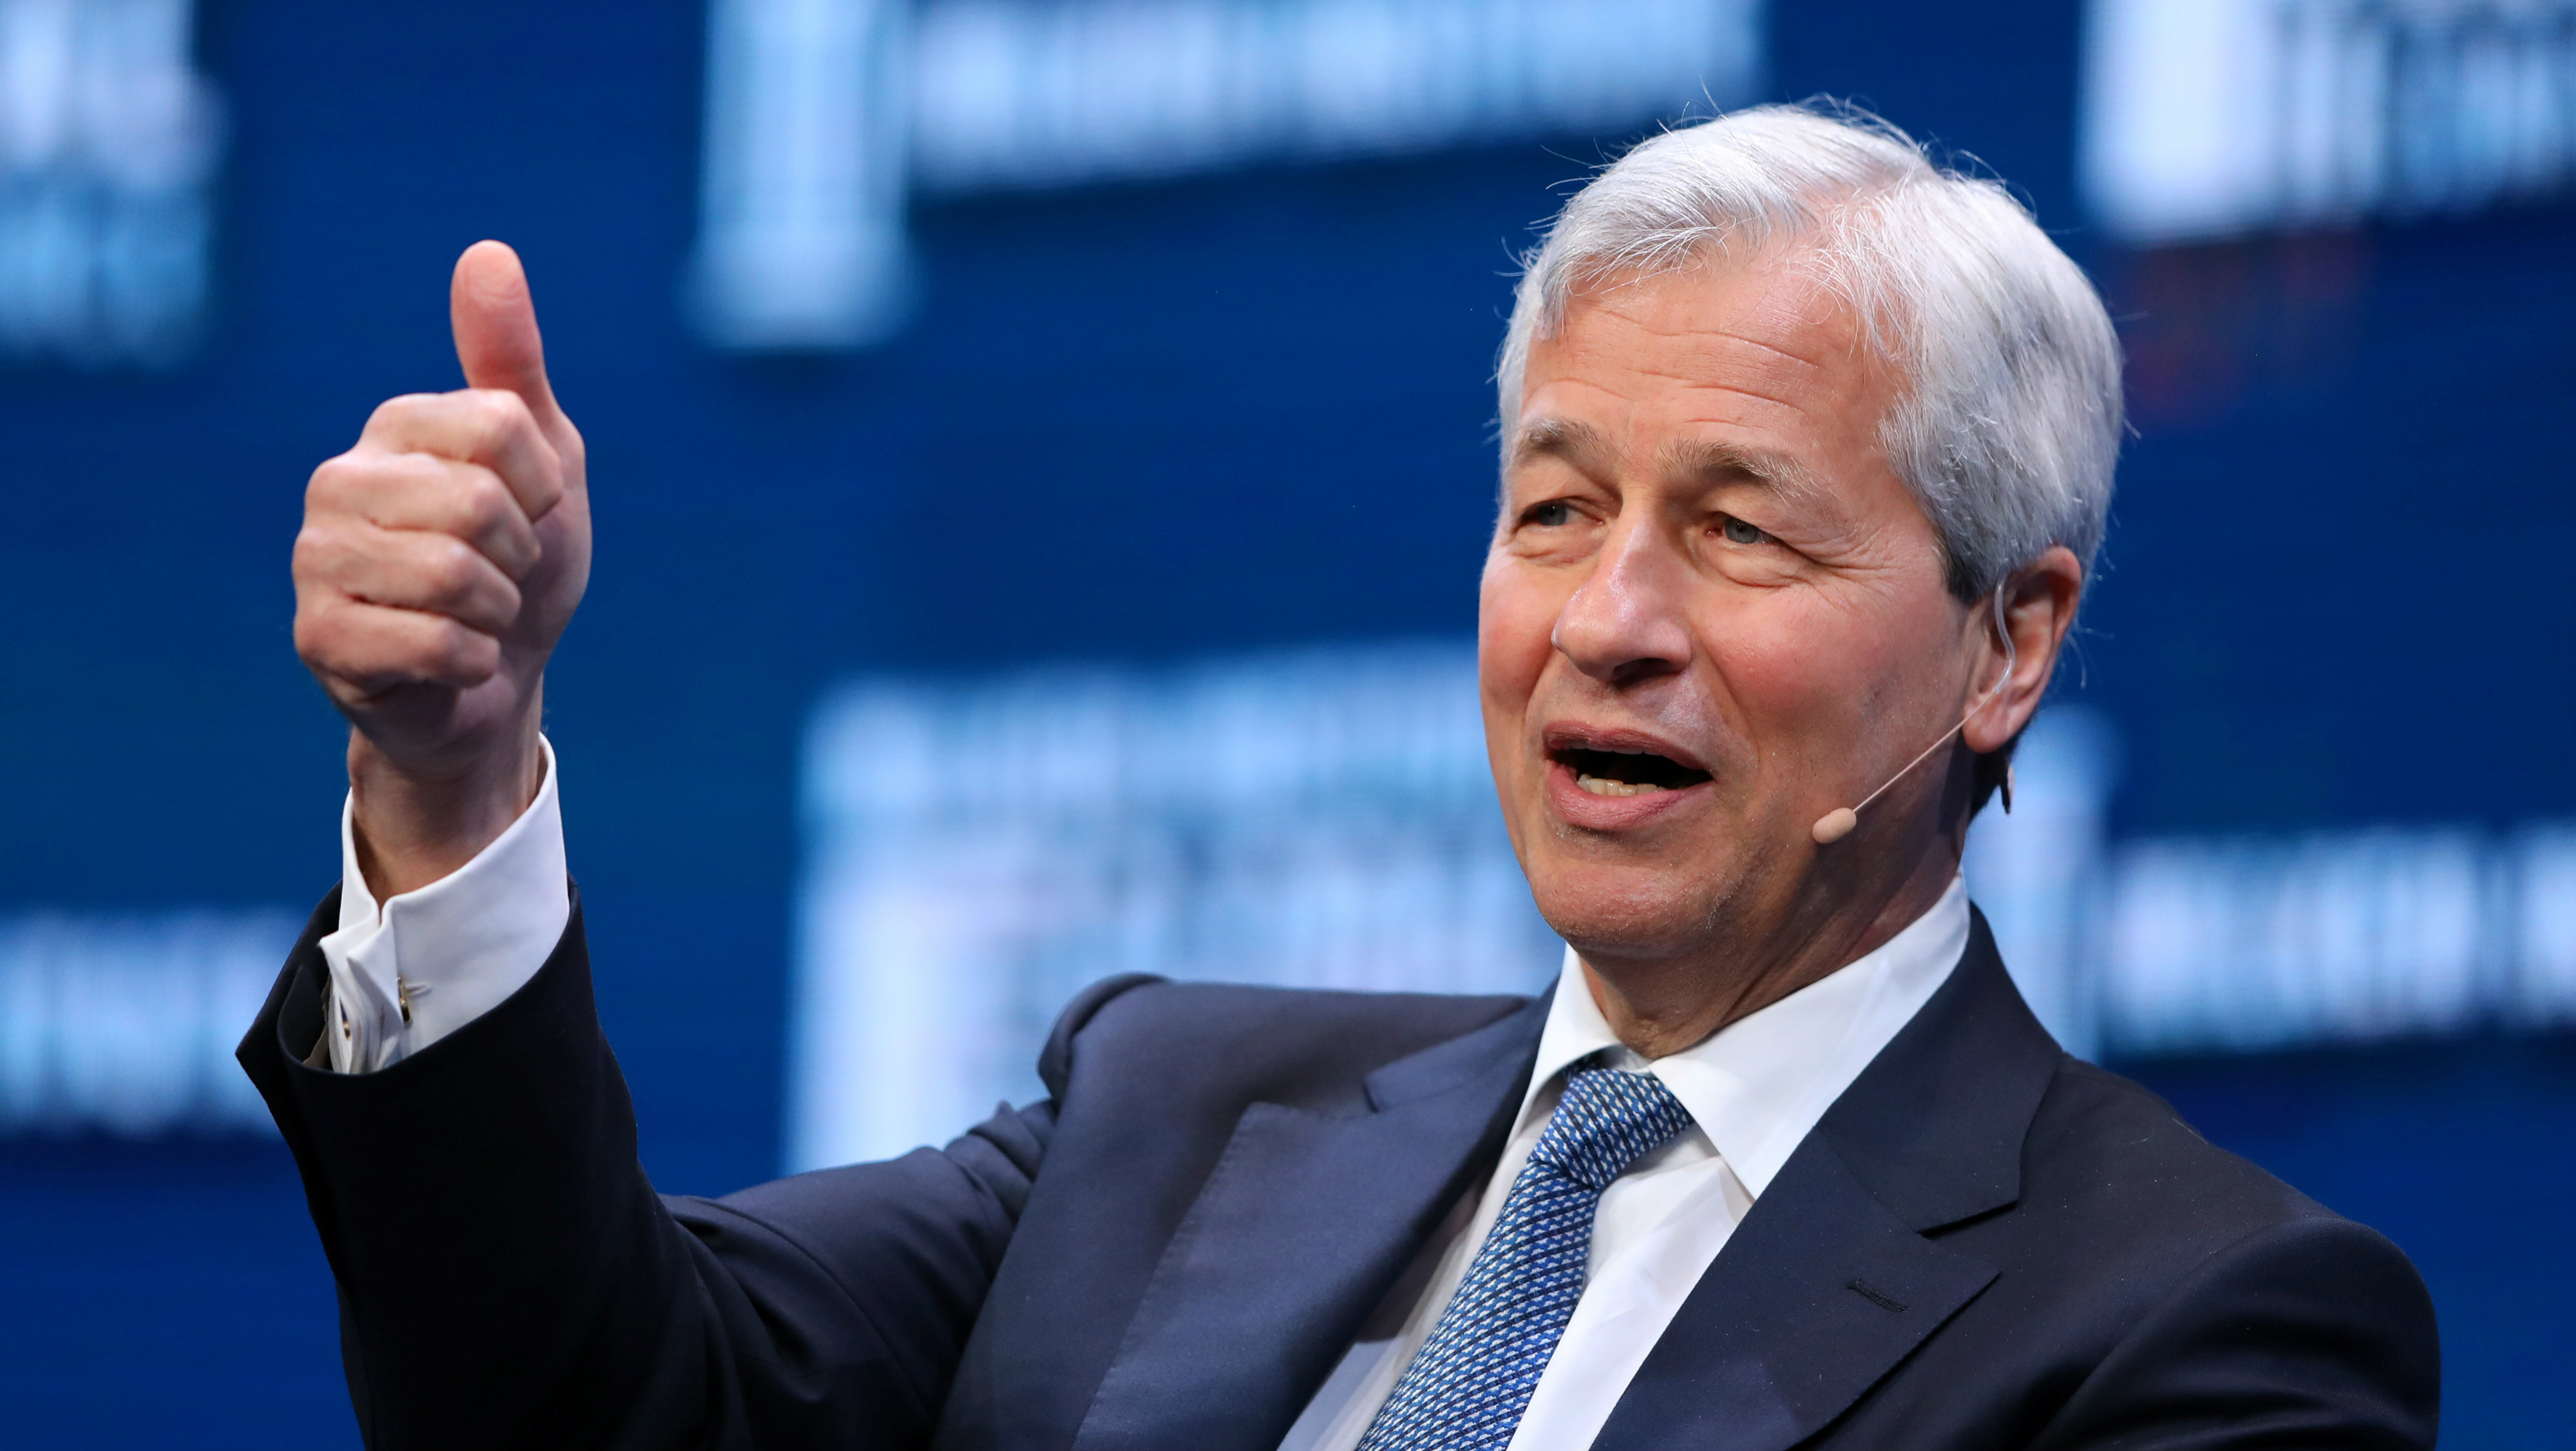 JP Morgan was behind the whole thing forecast